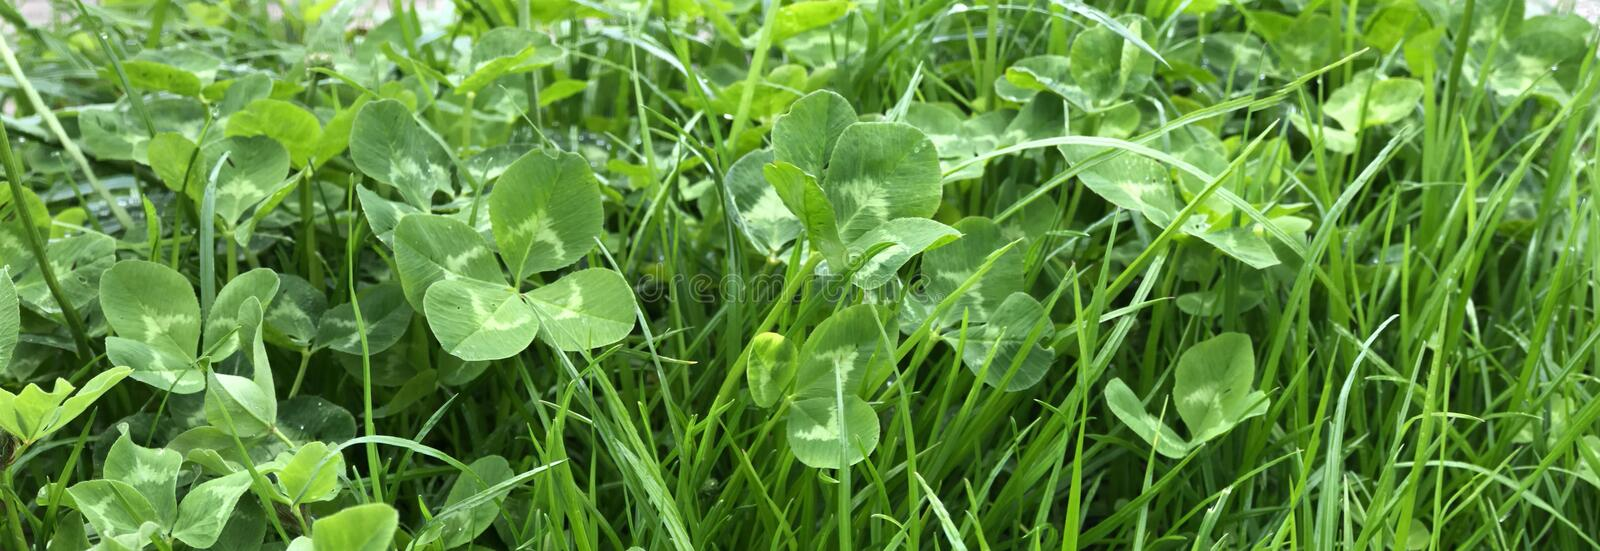 Four-leaf Clover in grass stock images